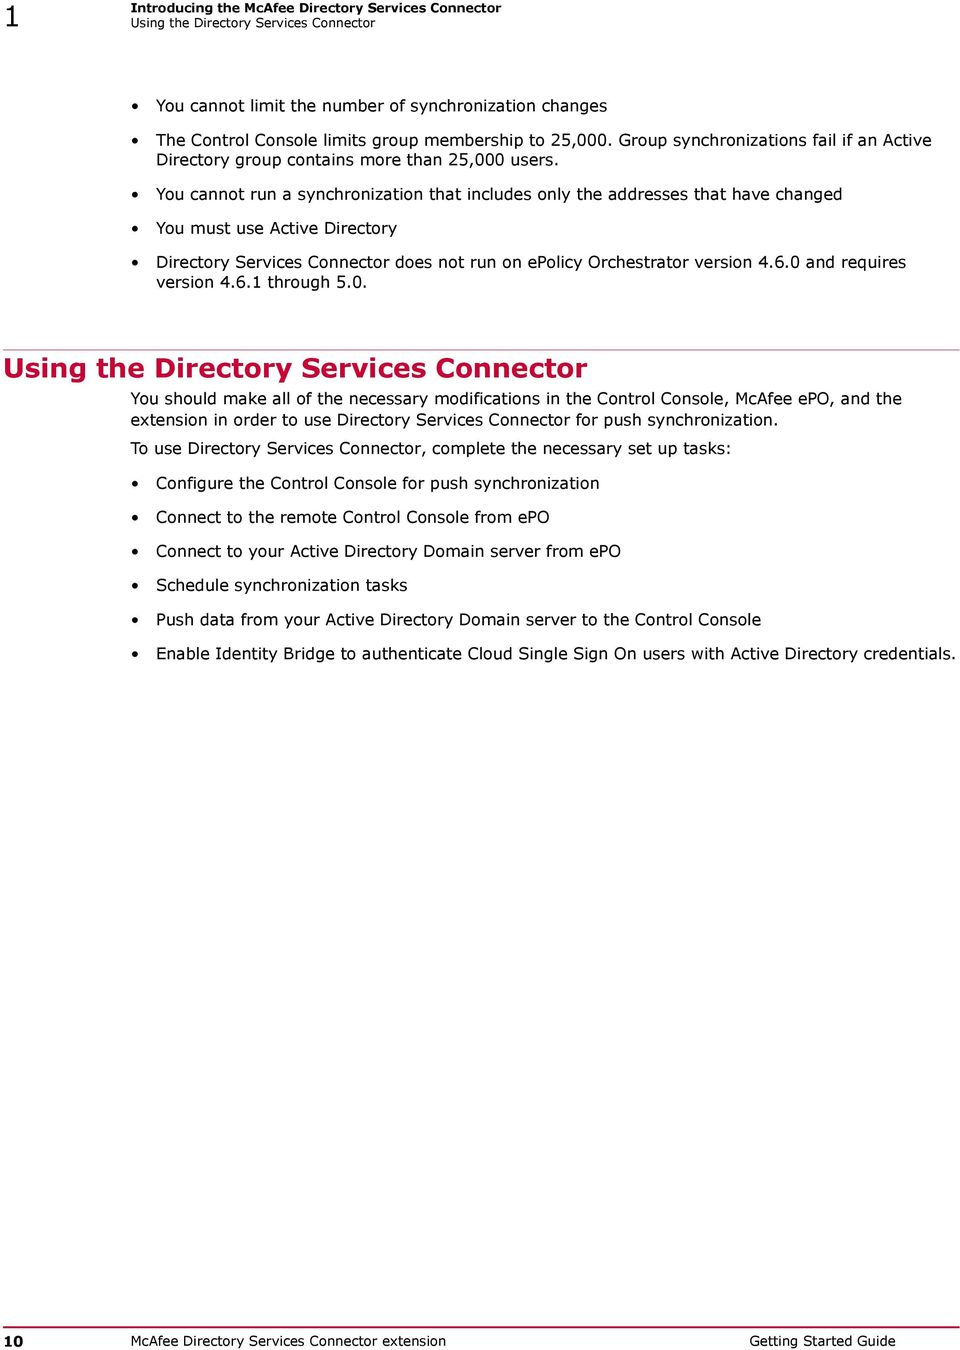 McAfee Directory Services Connector extension - PDF